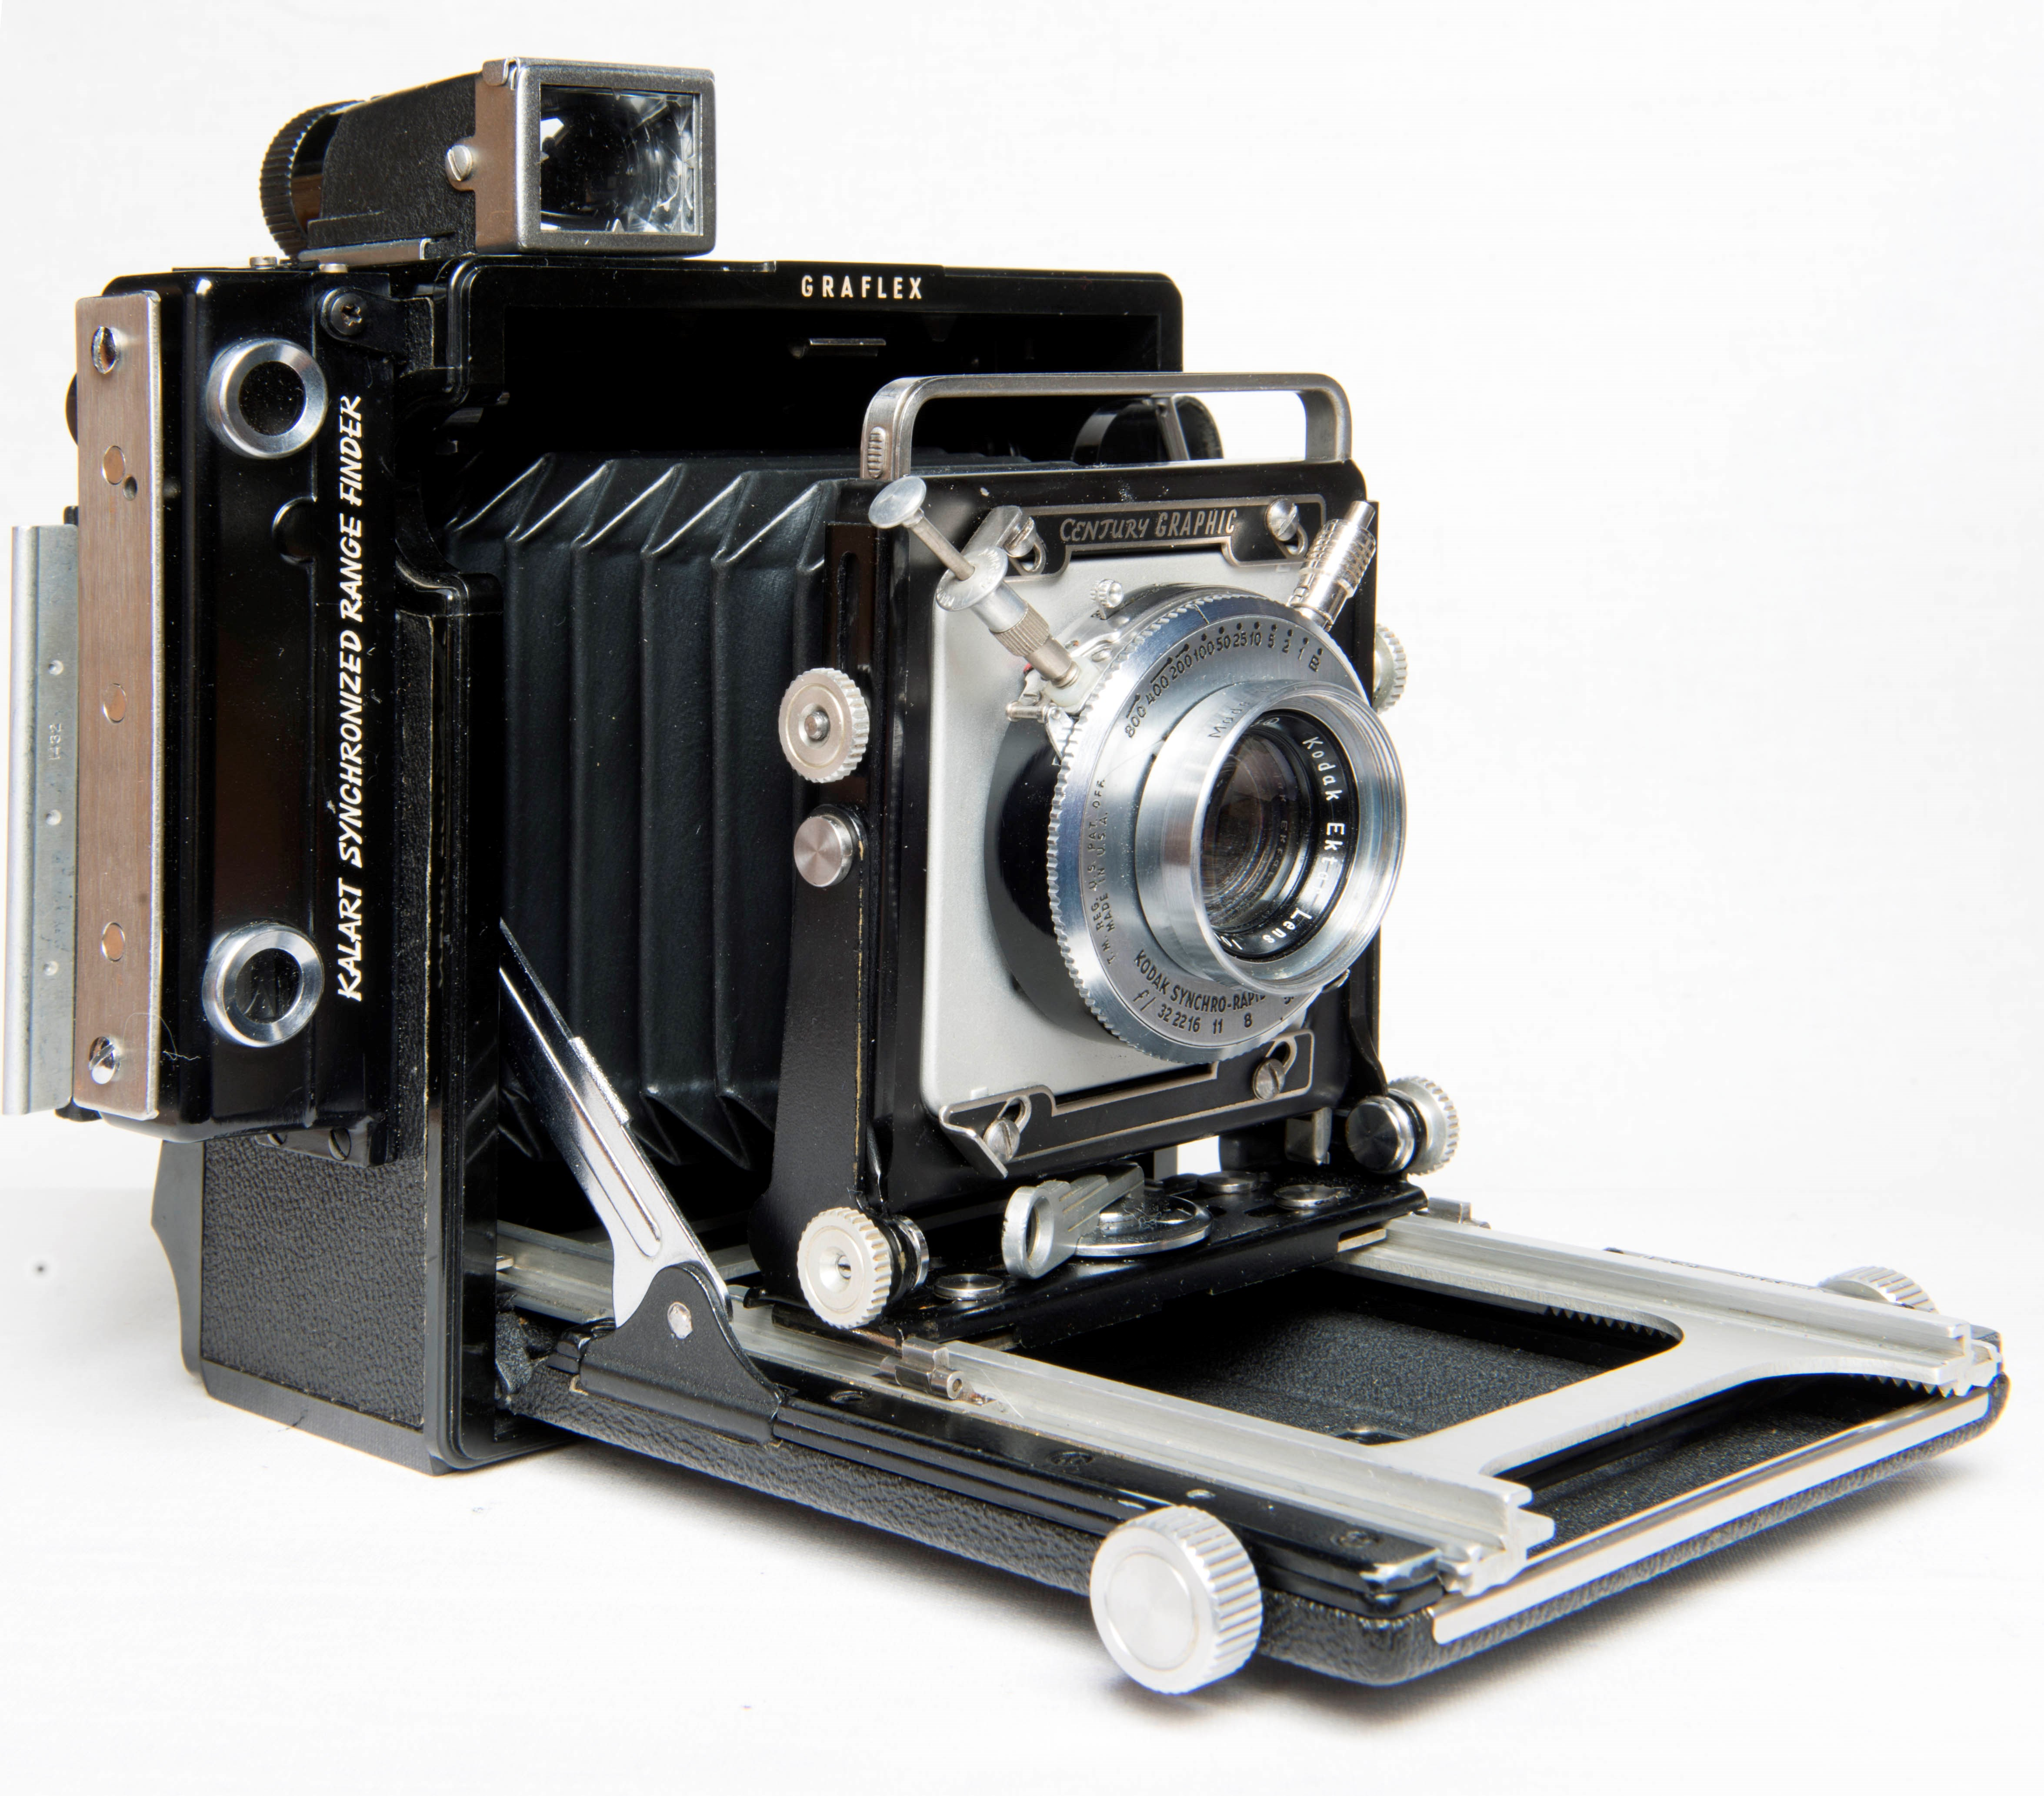 Graflex Century Graphic 2